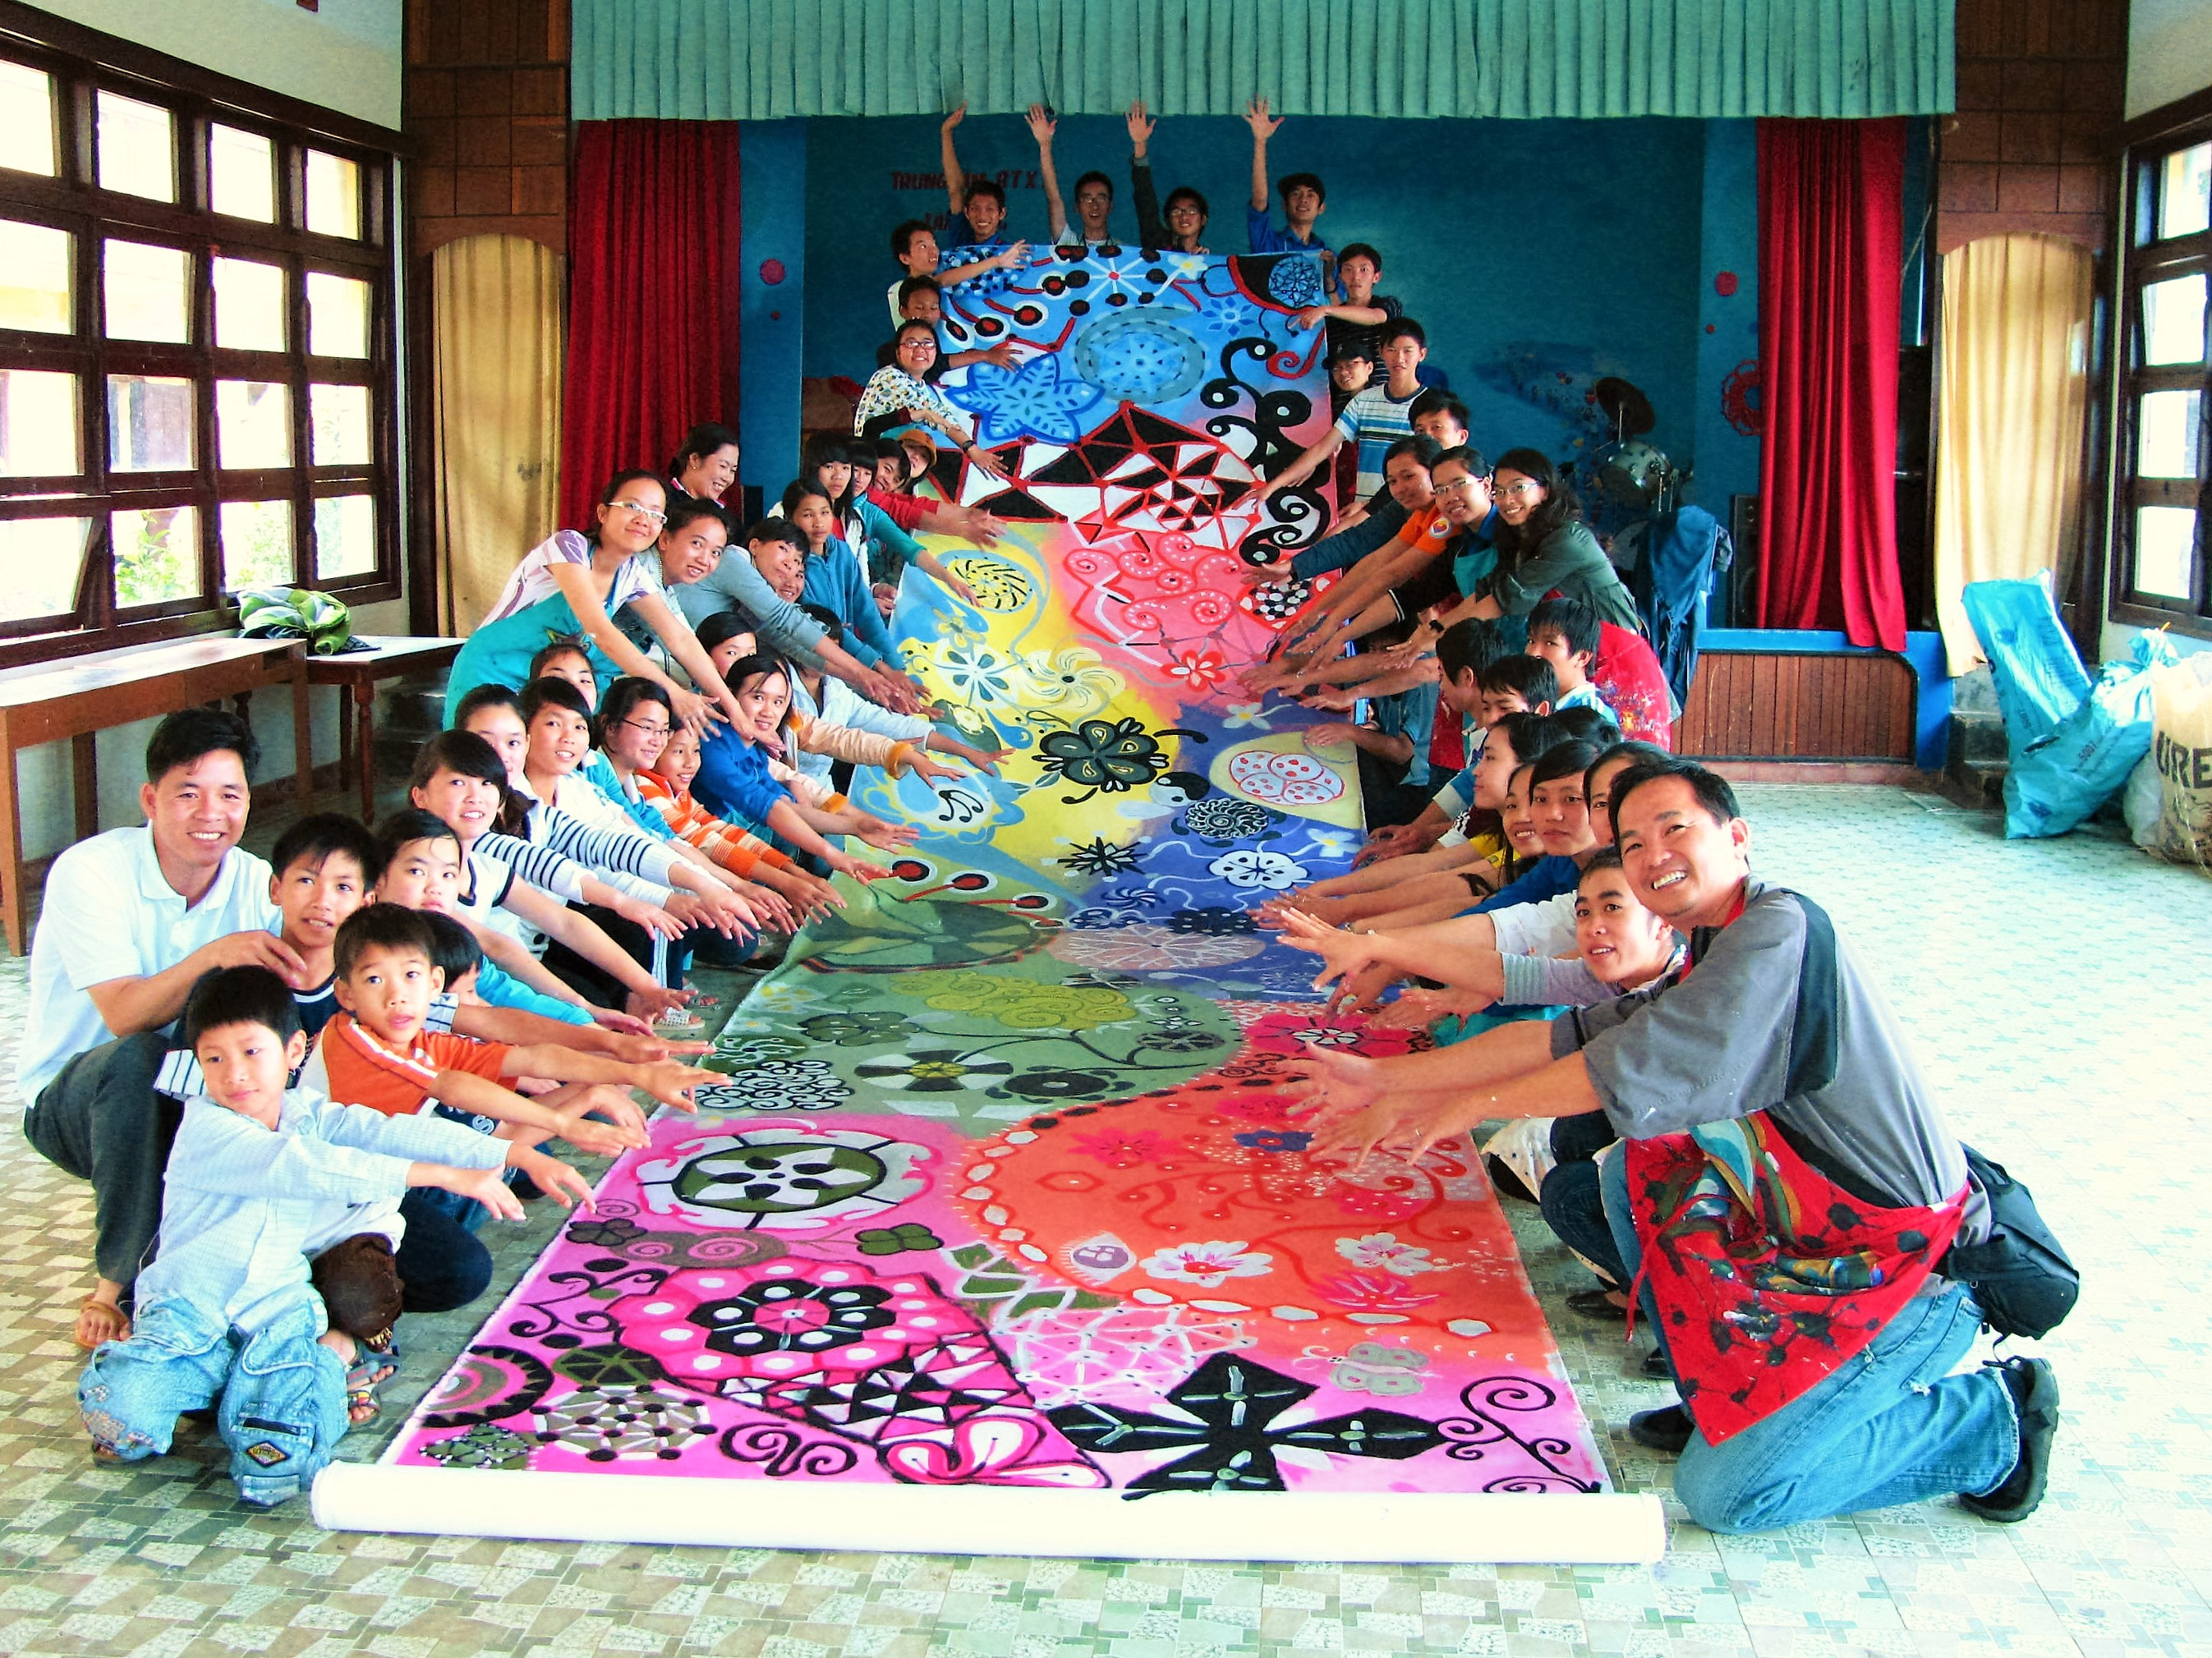 Circle Painting can produce very large, colorful banners or murals